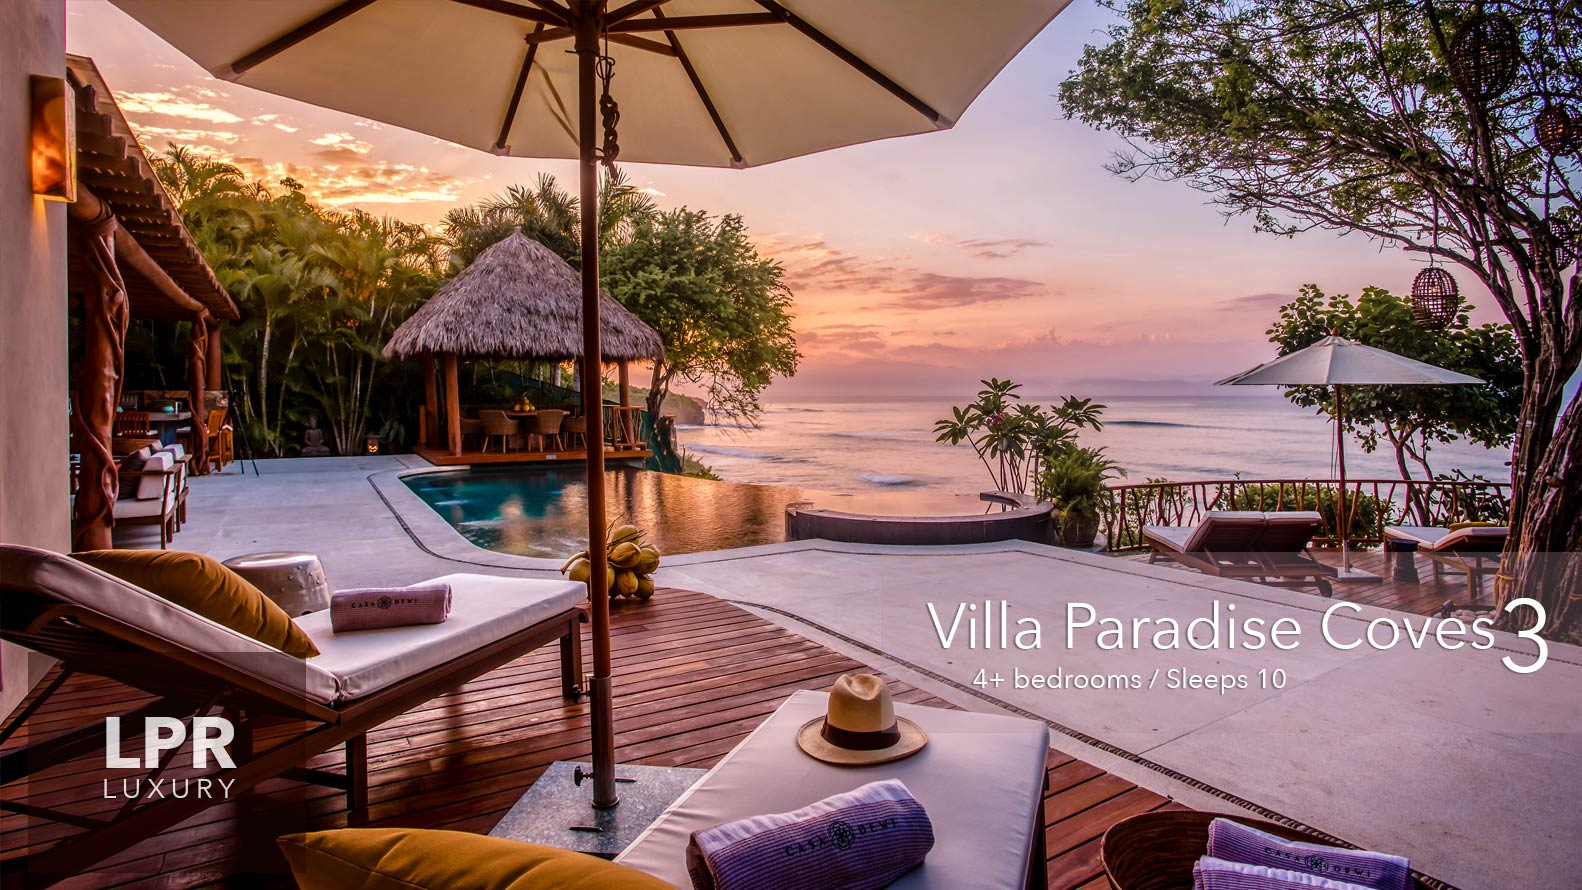 Villa Paradise Coves 3 - Luxury beachfront vacation rental villas for sale - Puerto Vallarta luxury real estate